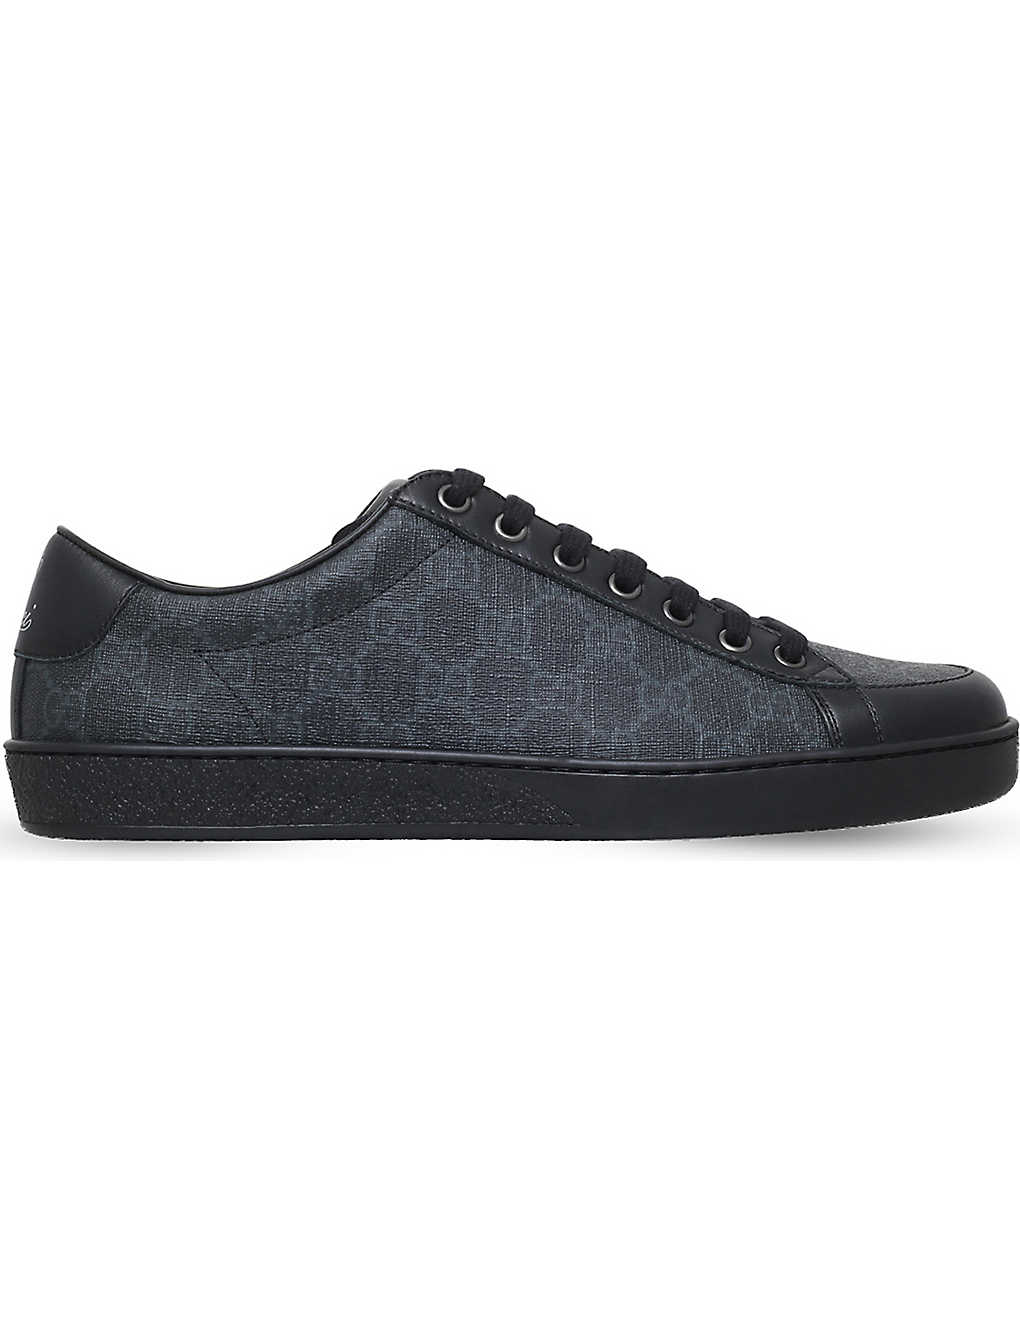 7921c025ab0 ... Brooklyn gg canvas low-top trainers zoom ...